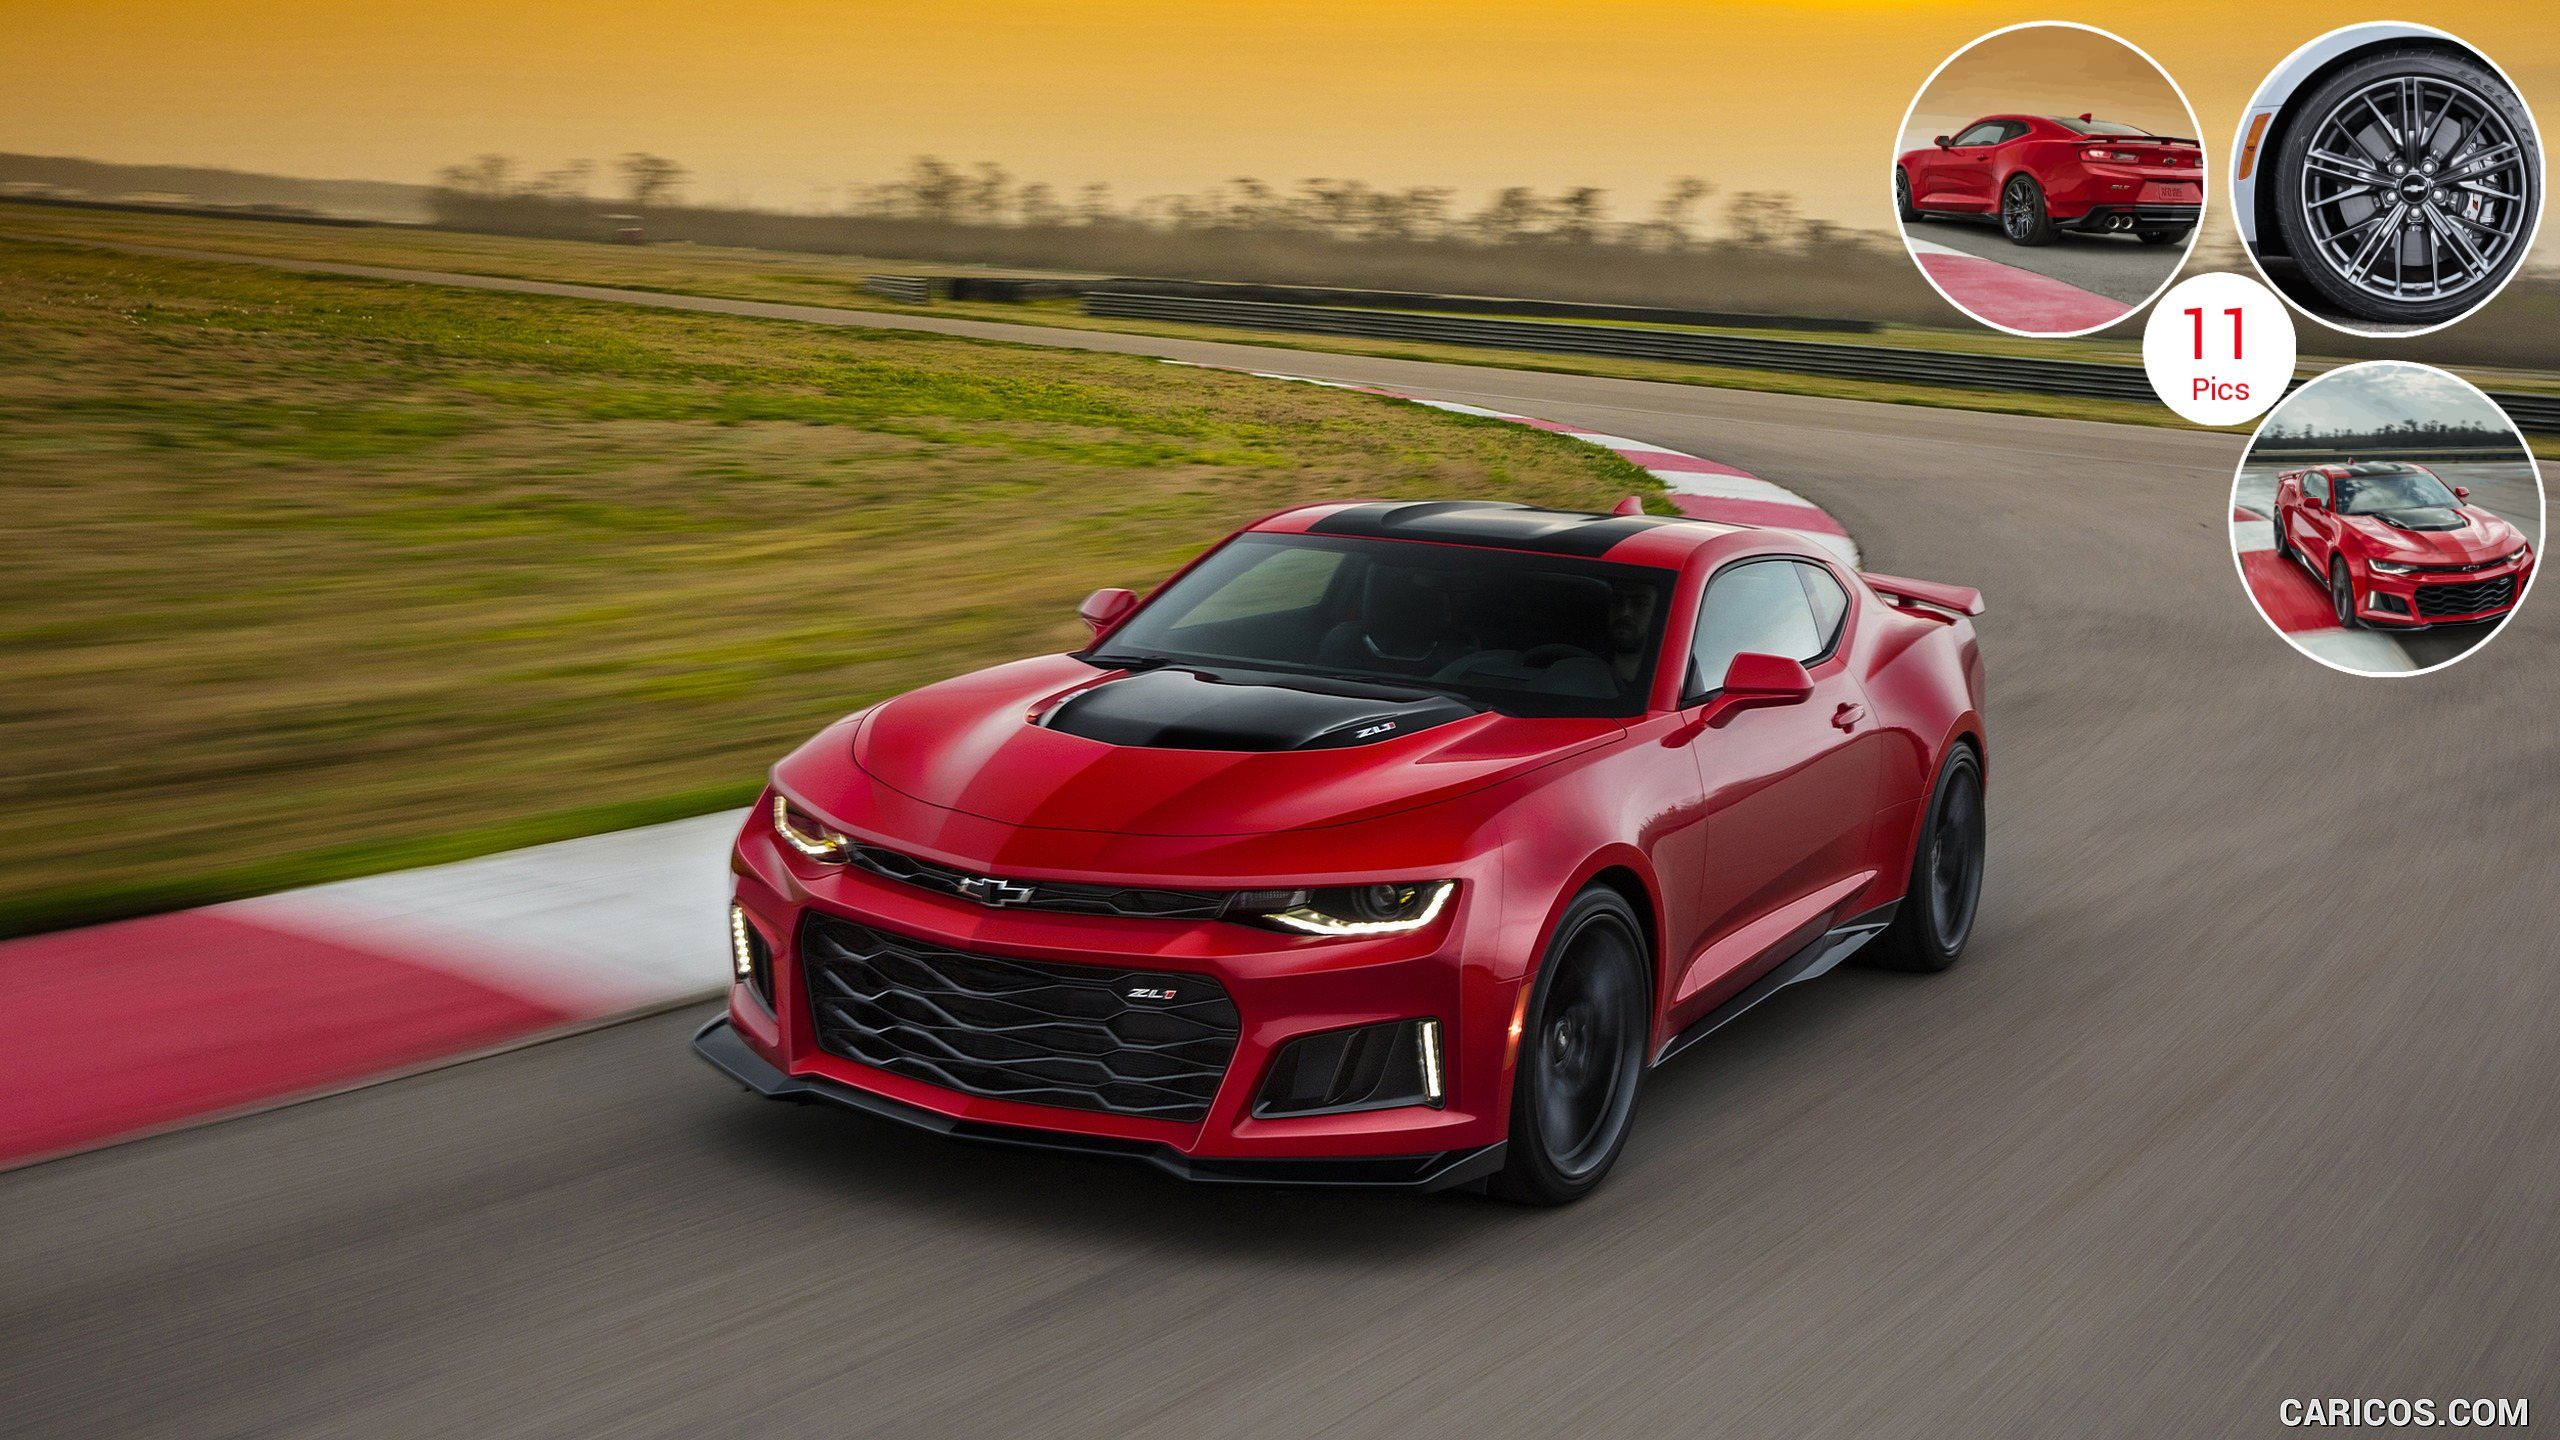 1920x1080 2018 Chevrolet Camaro ZL1 1LE Wallpapers & HD Images - WSupercars. 1920x1080 2018 Chevrolet Camaro ZL1 1LE Wallpapers ...